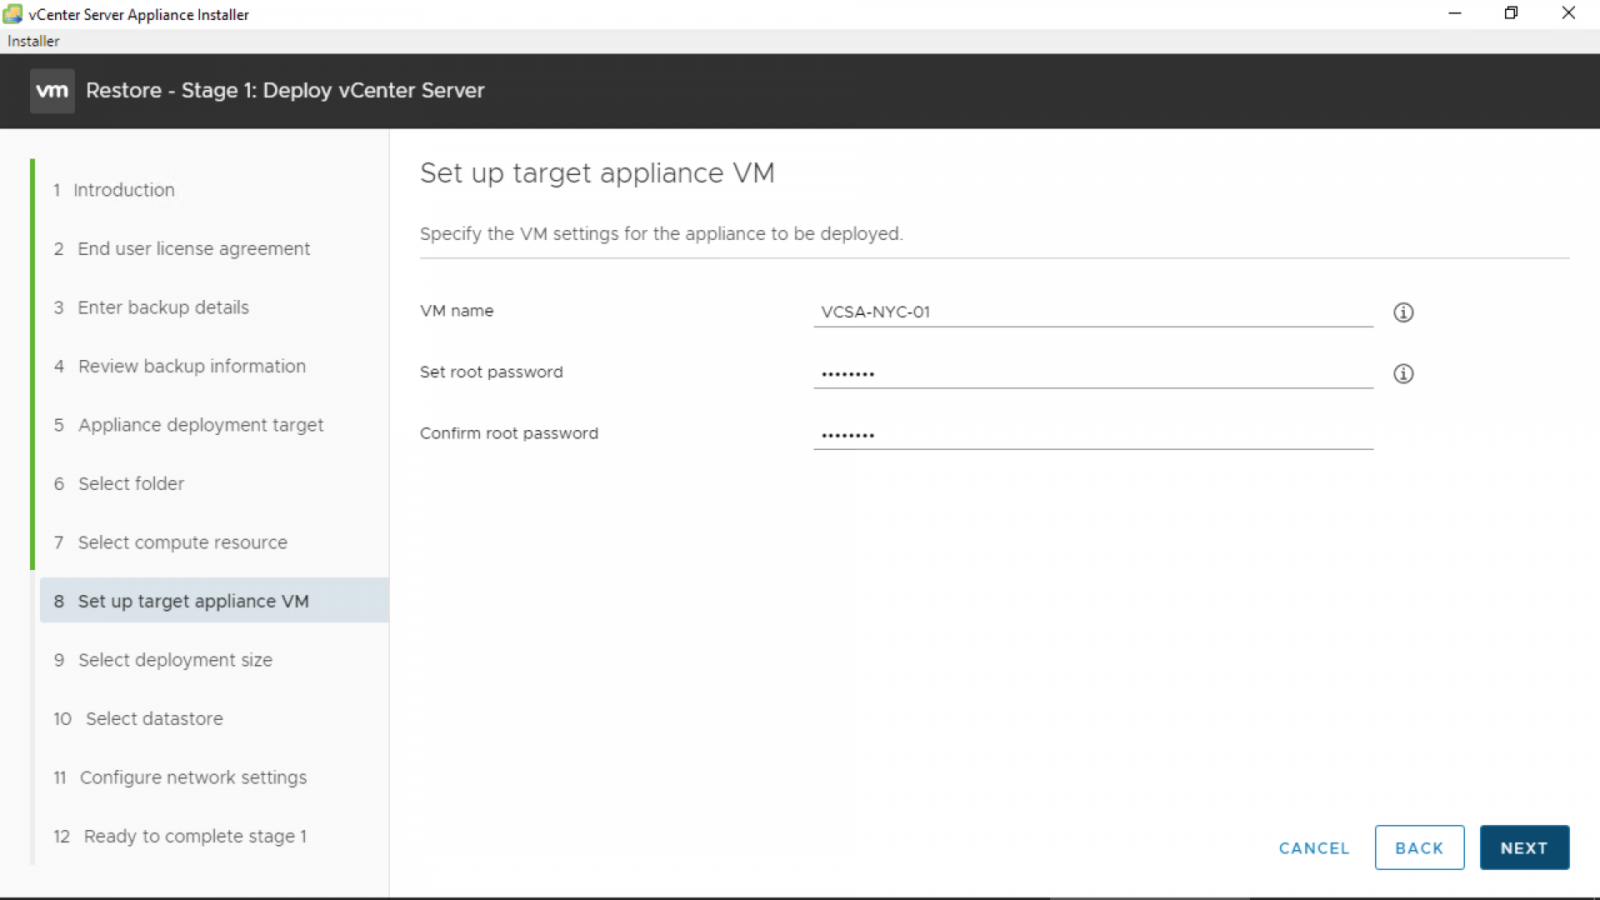 Select the compute resource to deploy the vCenter the vCenter Server Appliance to and click [Next].